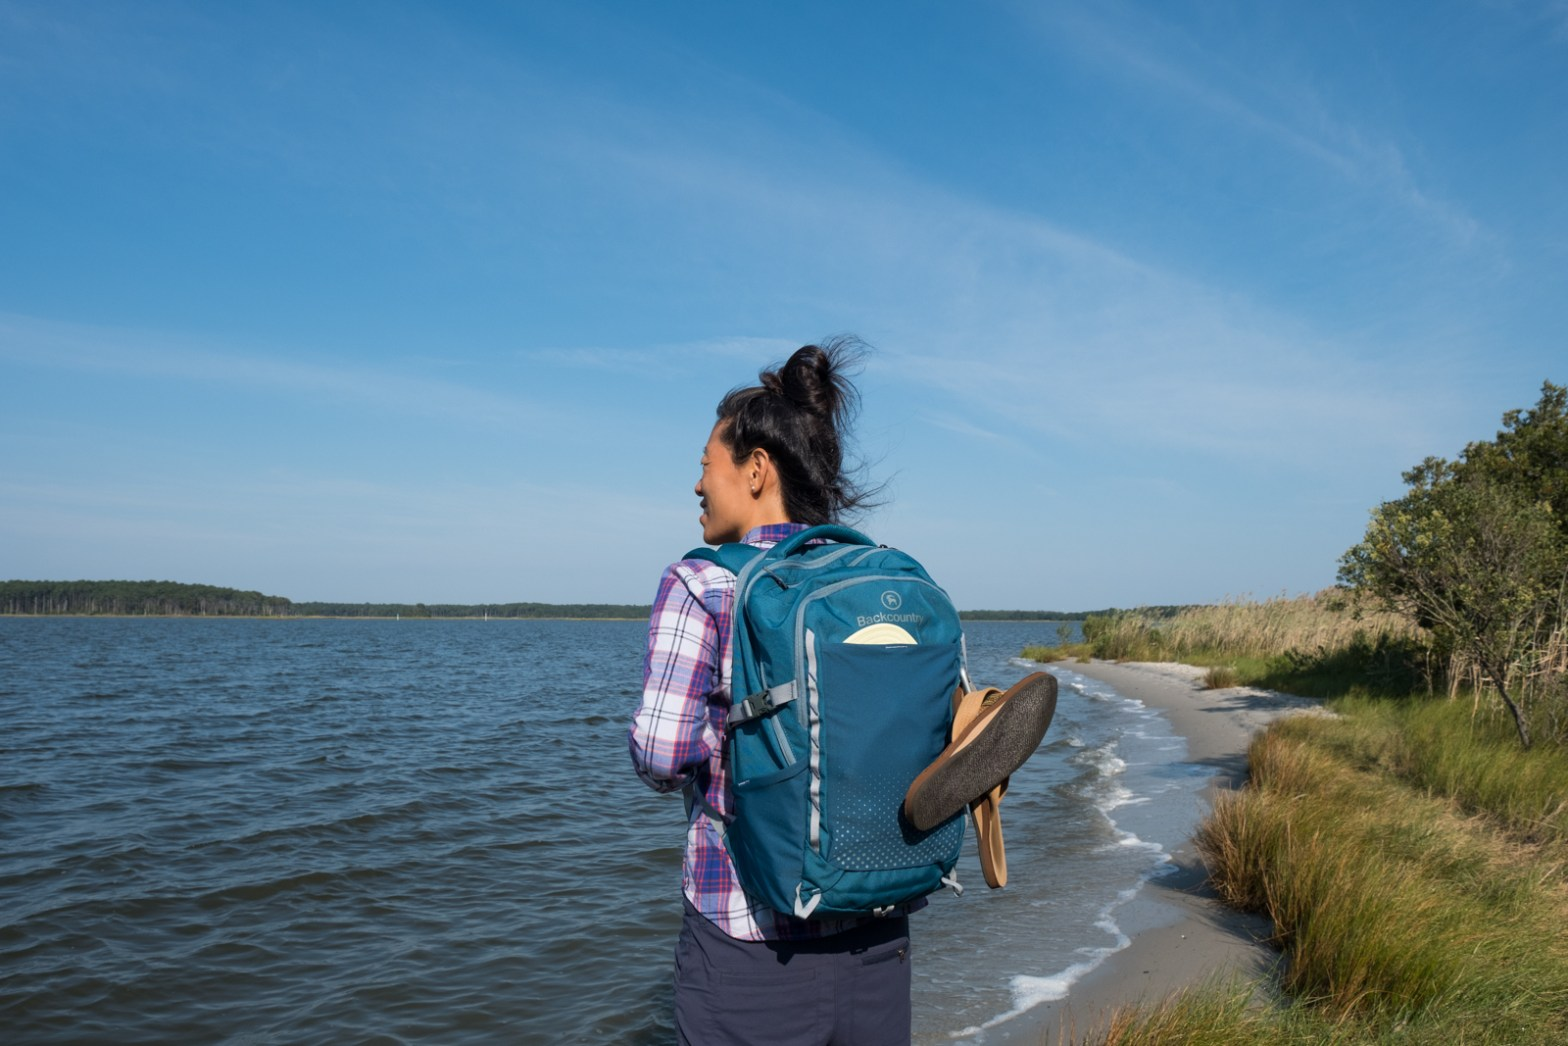 Erin McGrady wearing and testing the Review of the Backcountry 27L Daypack